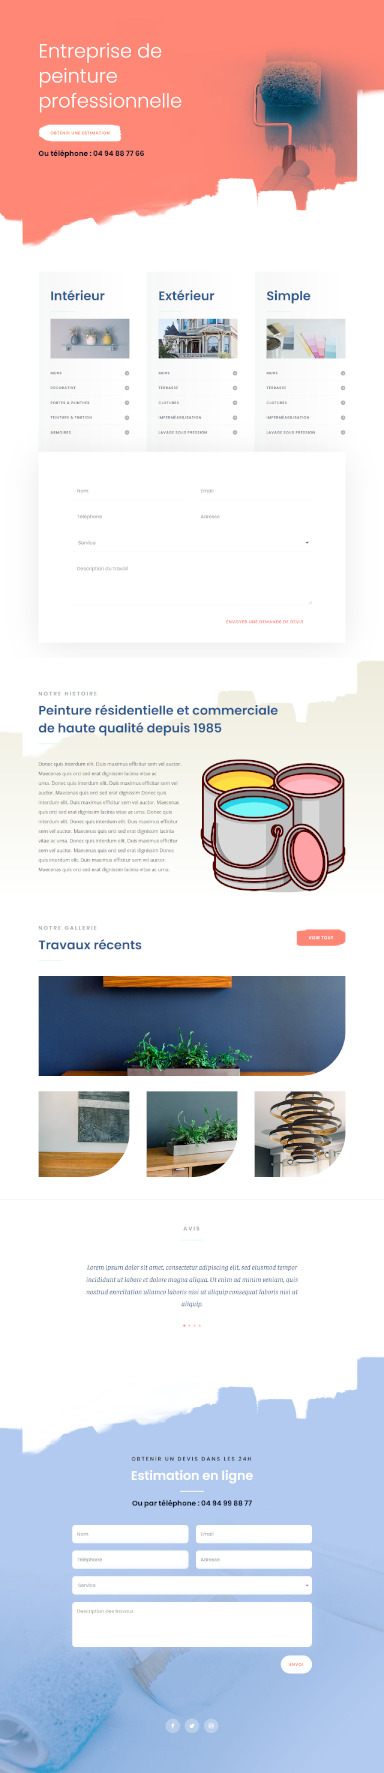 site de peintre par totum orbem creation de site internet